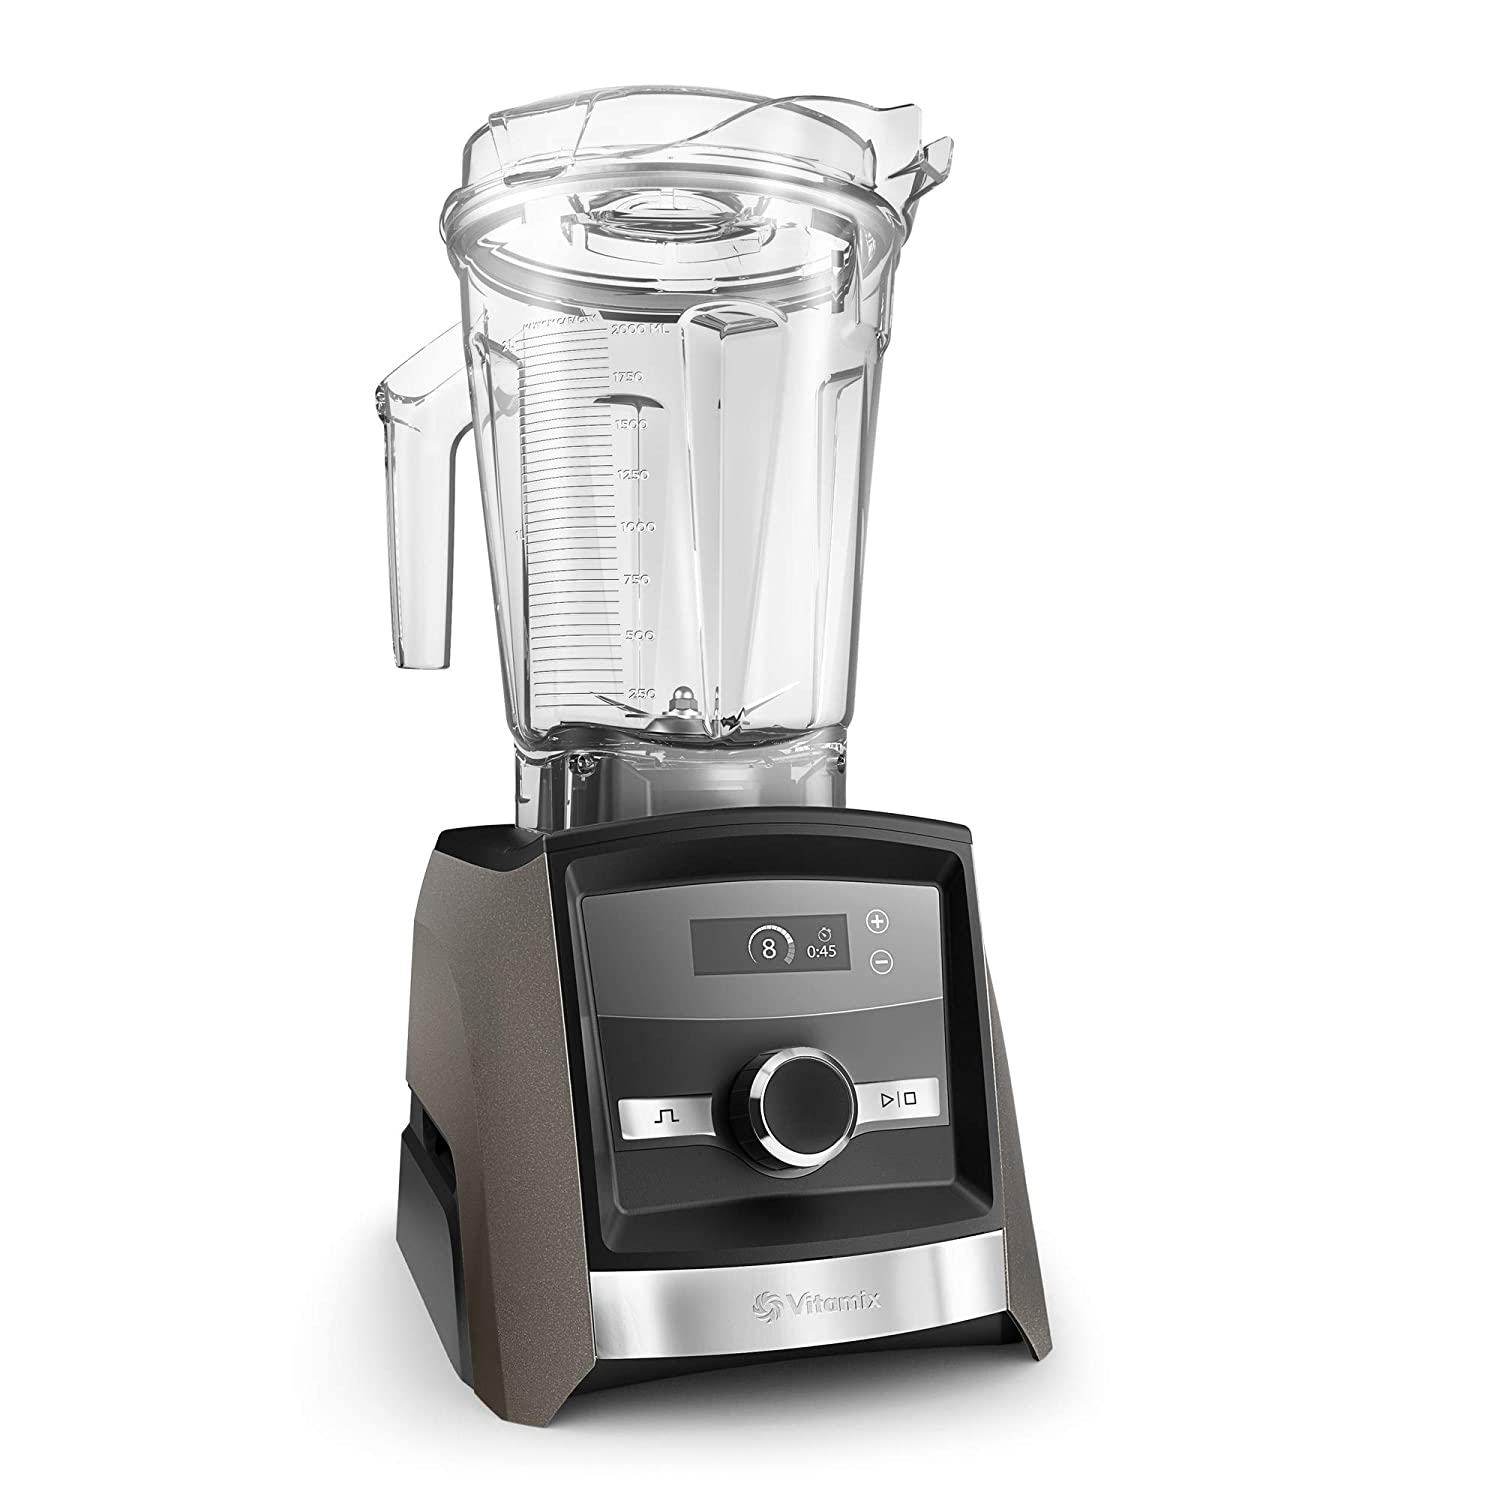 Vitamix A3300 Ascent Series Smart Blender, Professional-Grade, 64 oz. Low-Profile Container, Pearl Gray